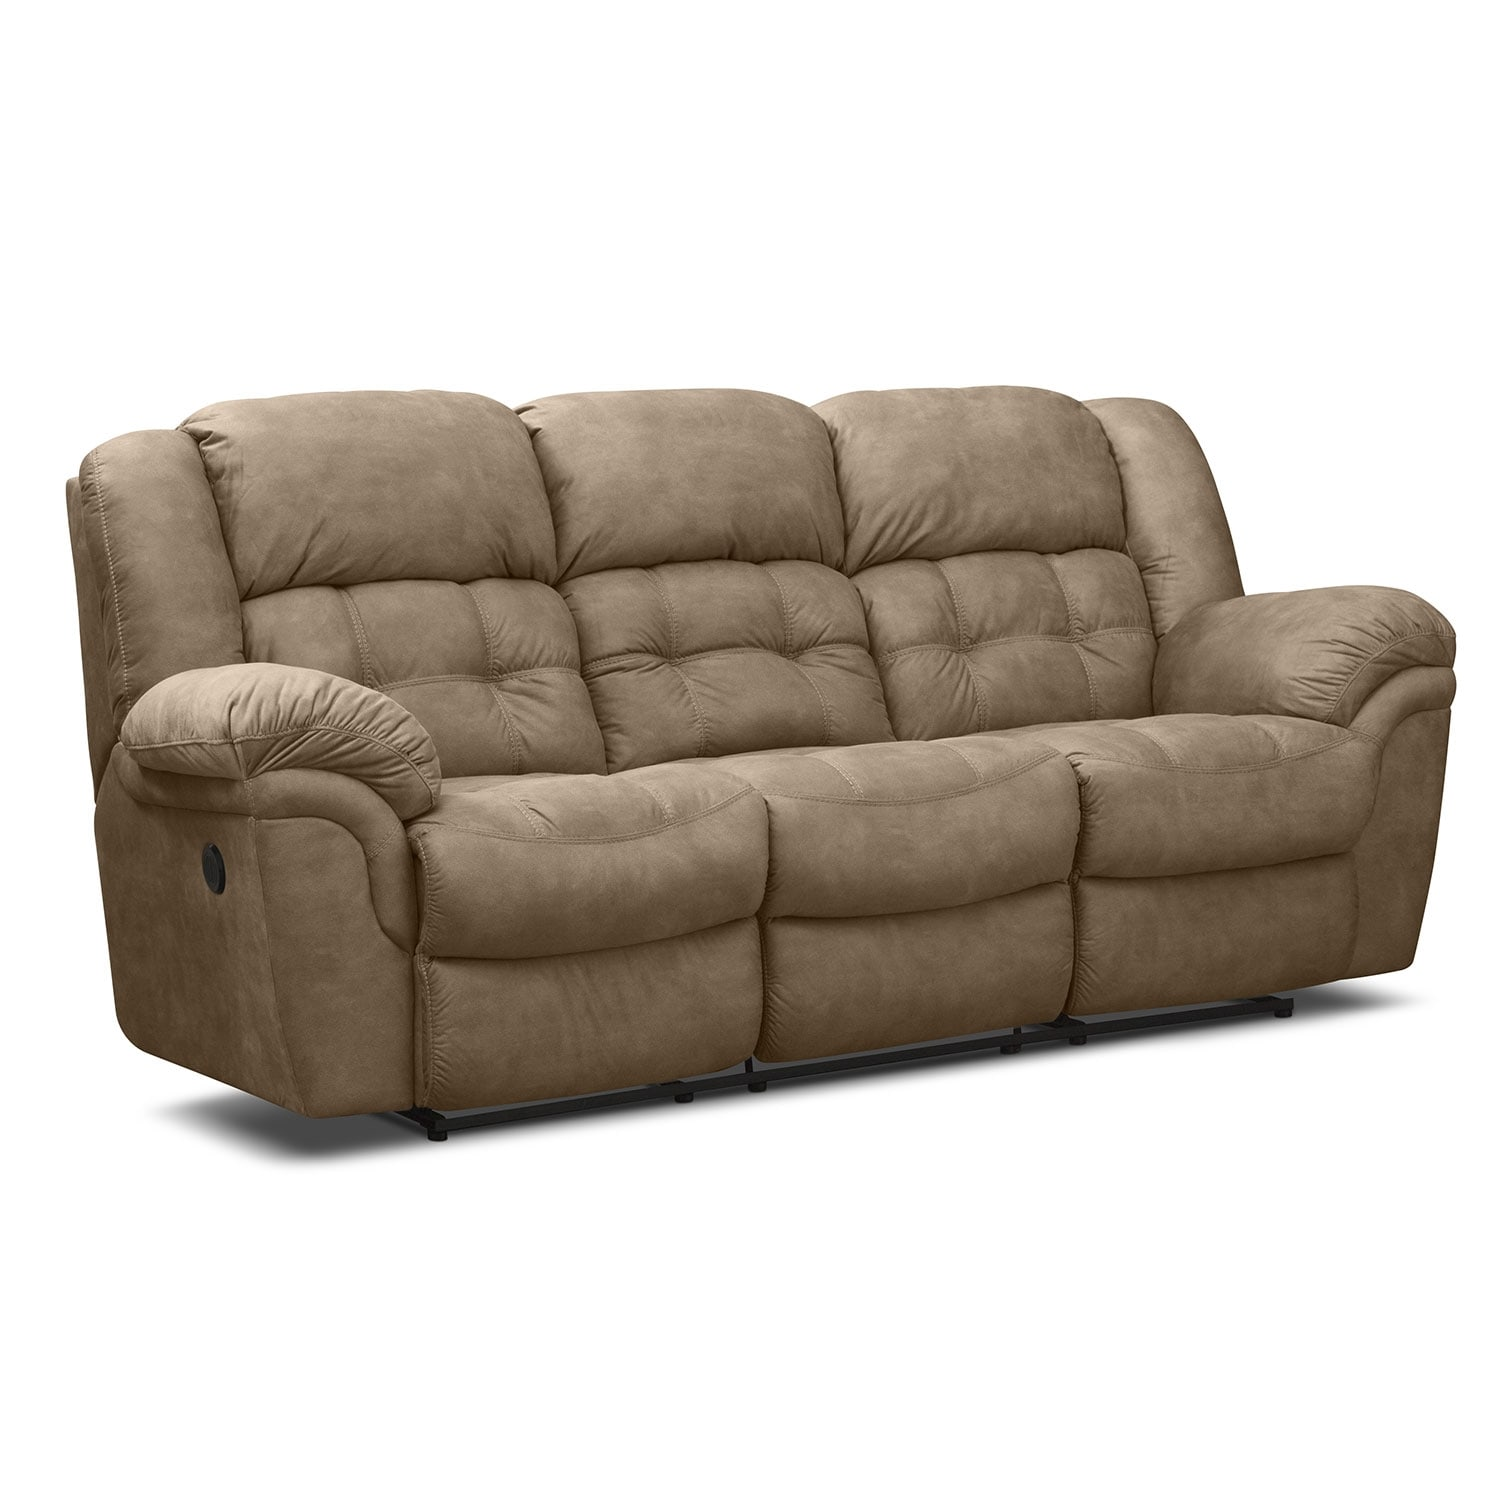 Lancer Power Reclining Sofa - Pecan